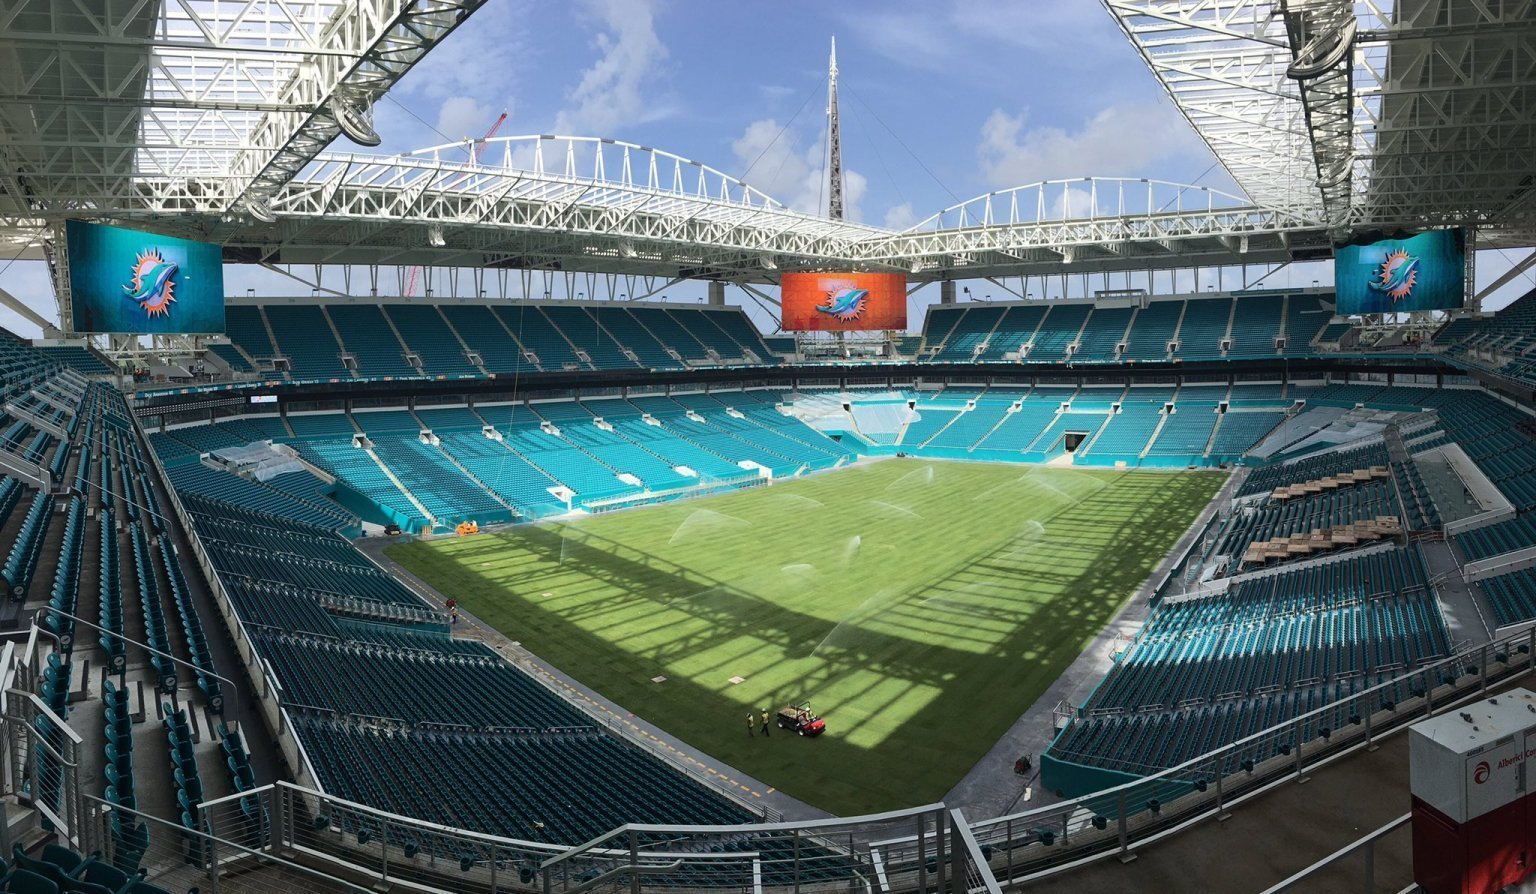 Dolphins New Grass Field Designed To Thrive While Canopy